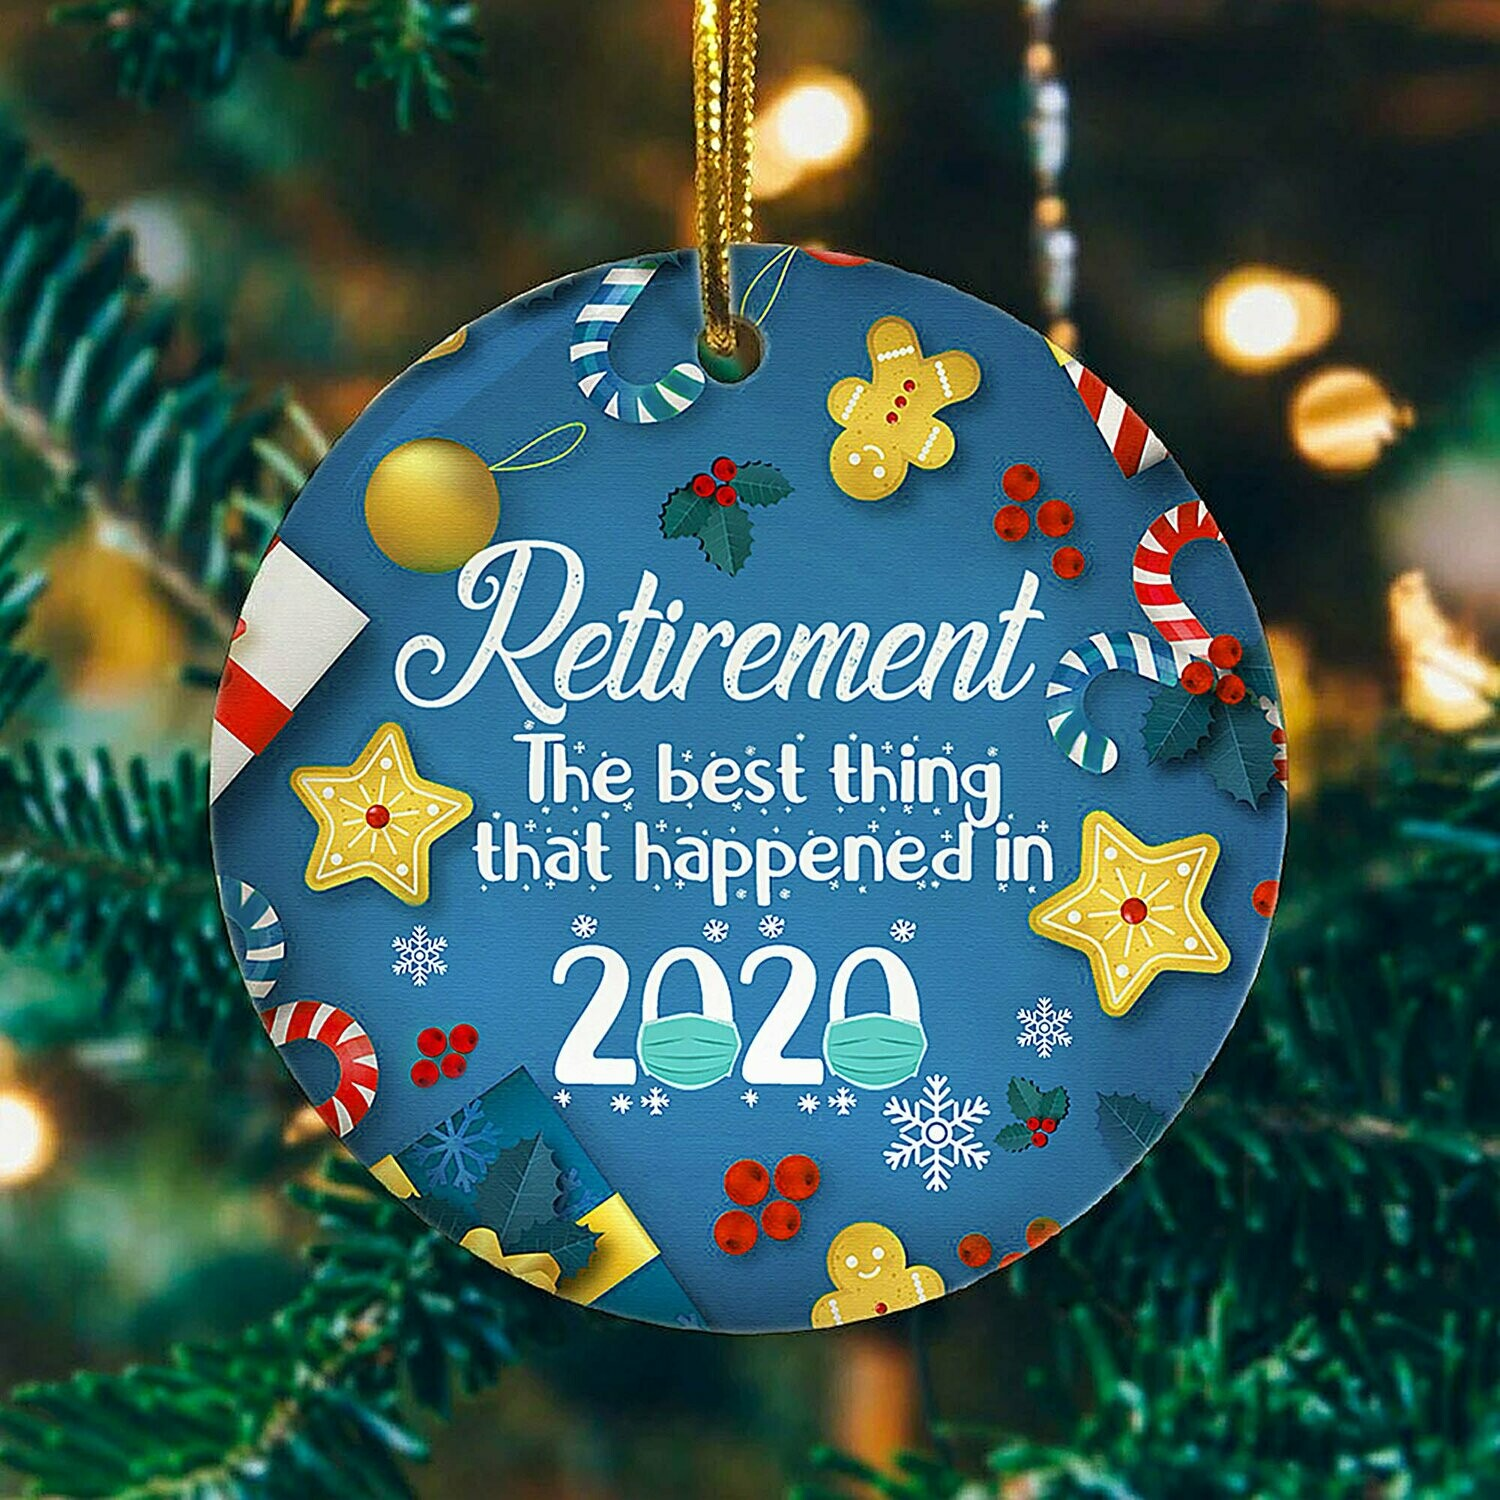 Retirement The Best Things That Happened In 2020,Funny 2020 Christmas Ornament,Xmas Gift Ornament,Christmas Tree Ornament,Mica Ornament